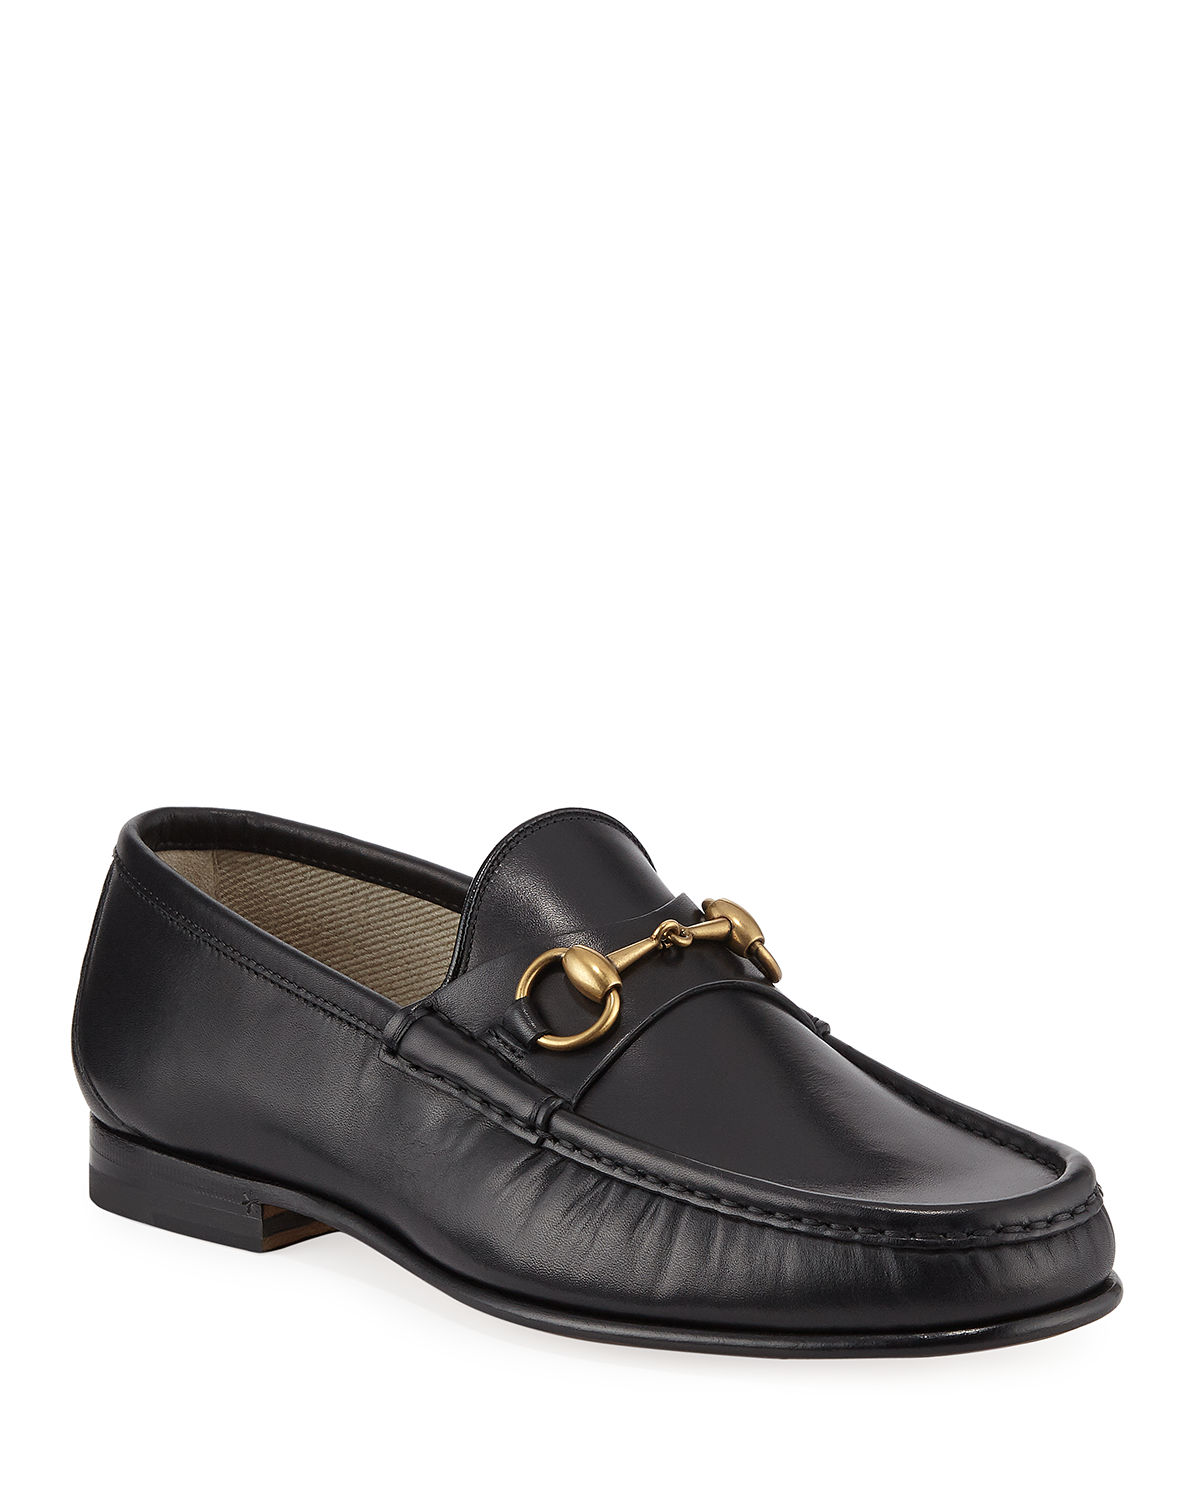 ab2092ba5241 Gucci Leather Horsebit Loafer